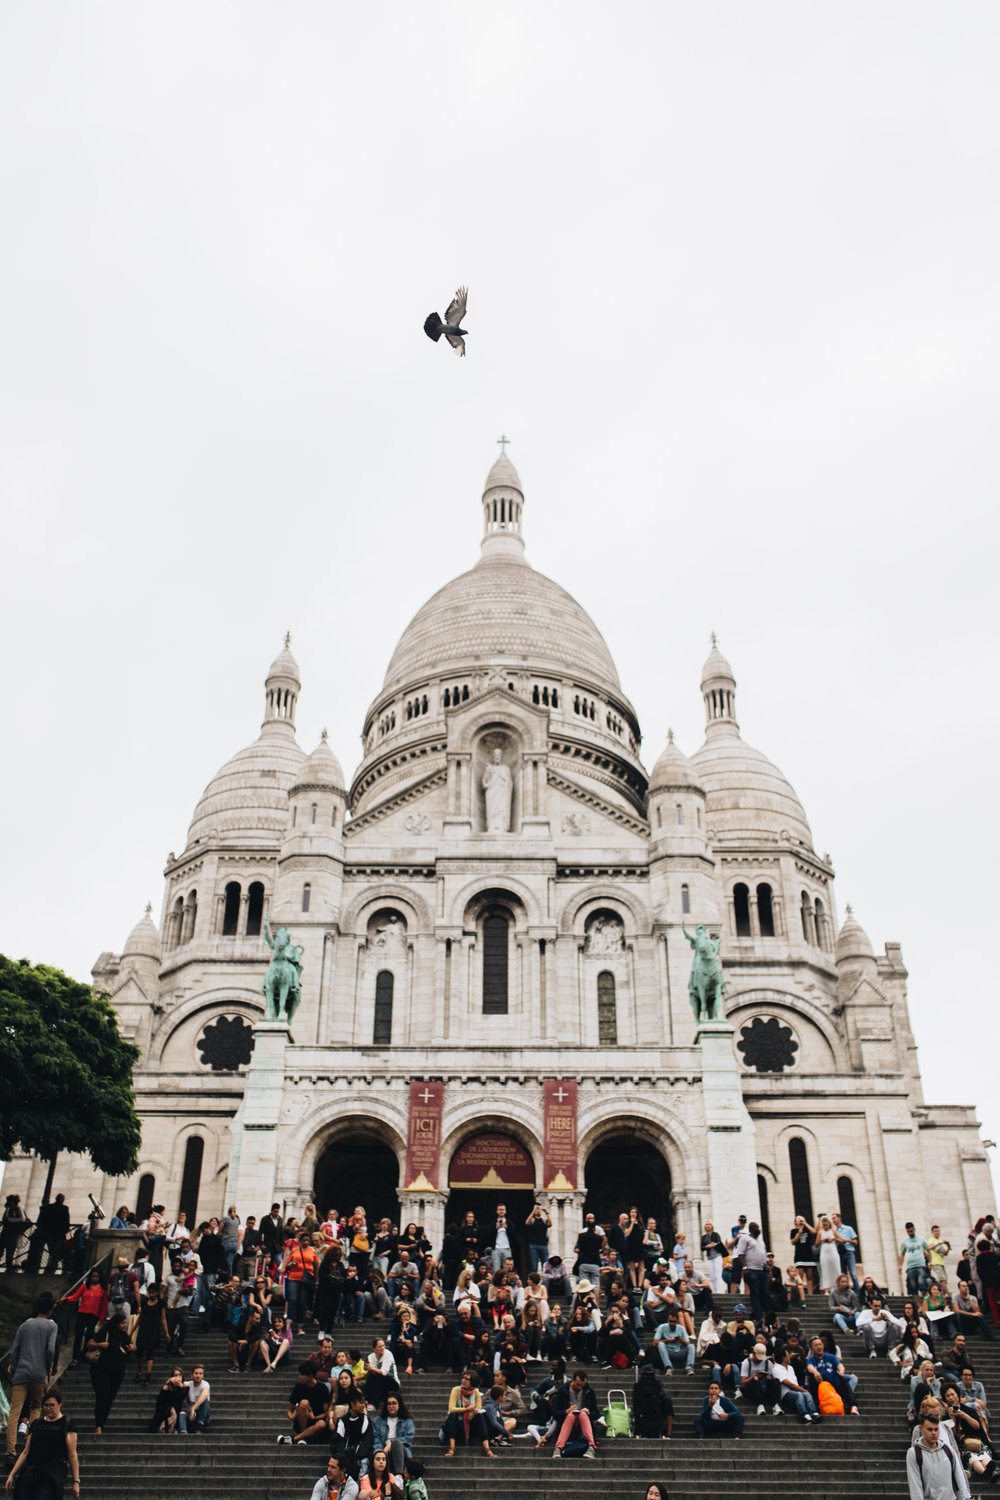 sacre-coeur in all its glory